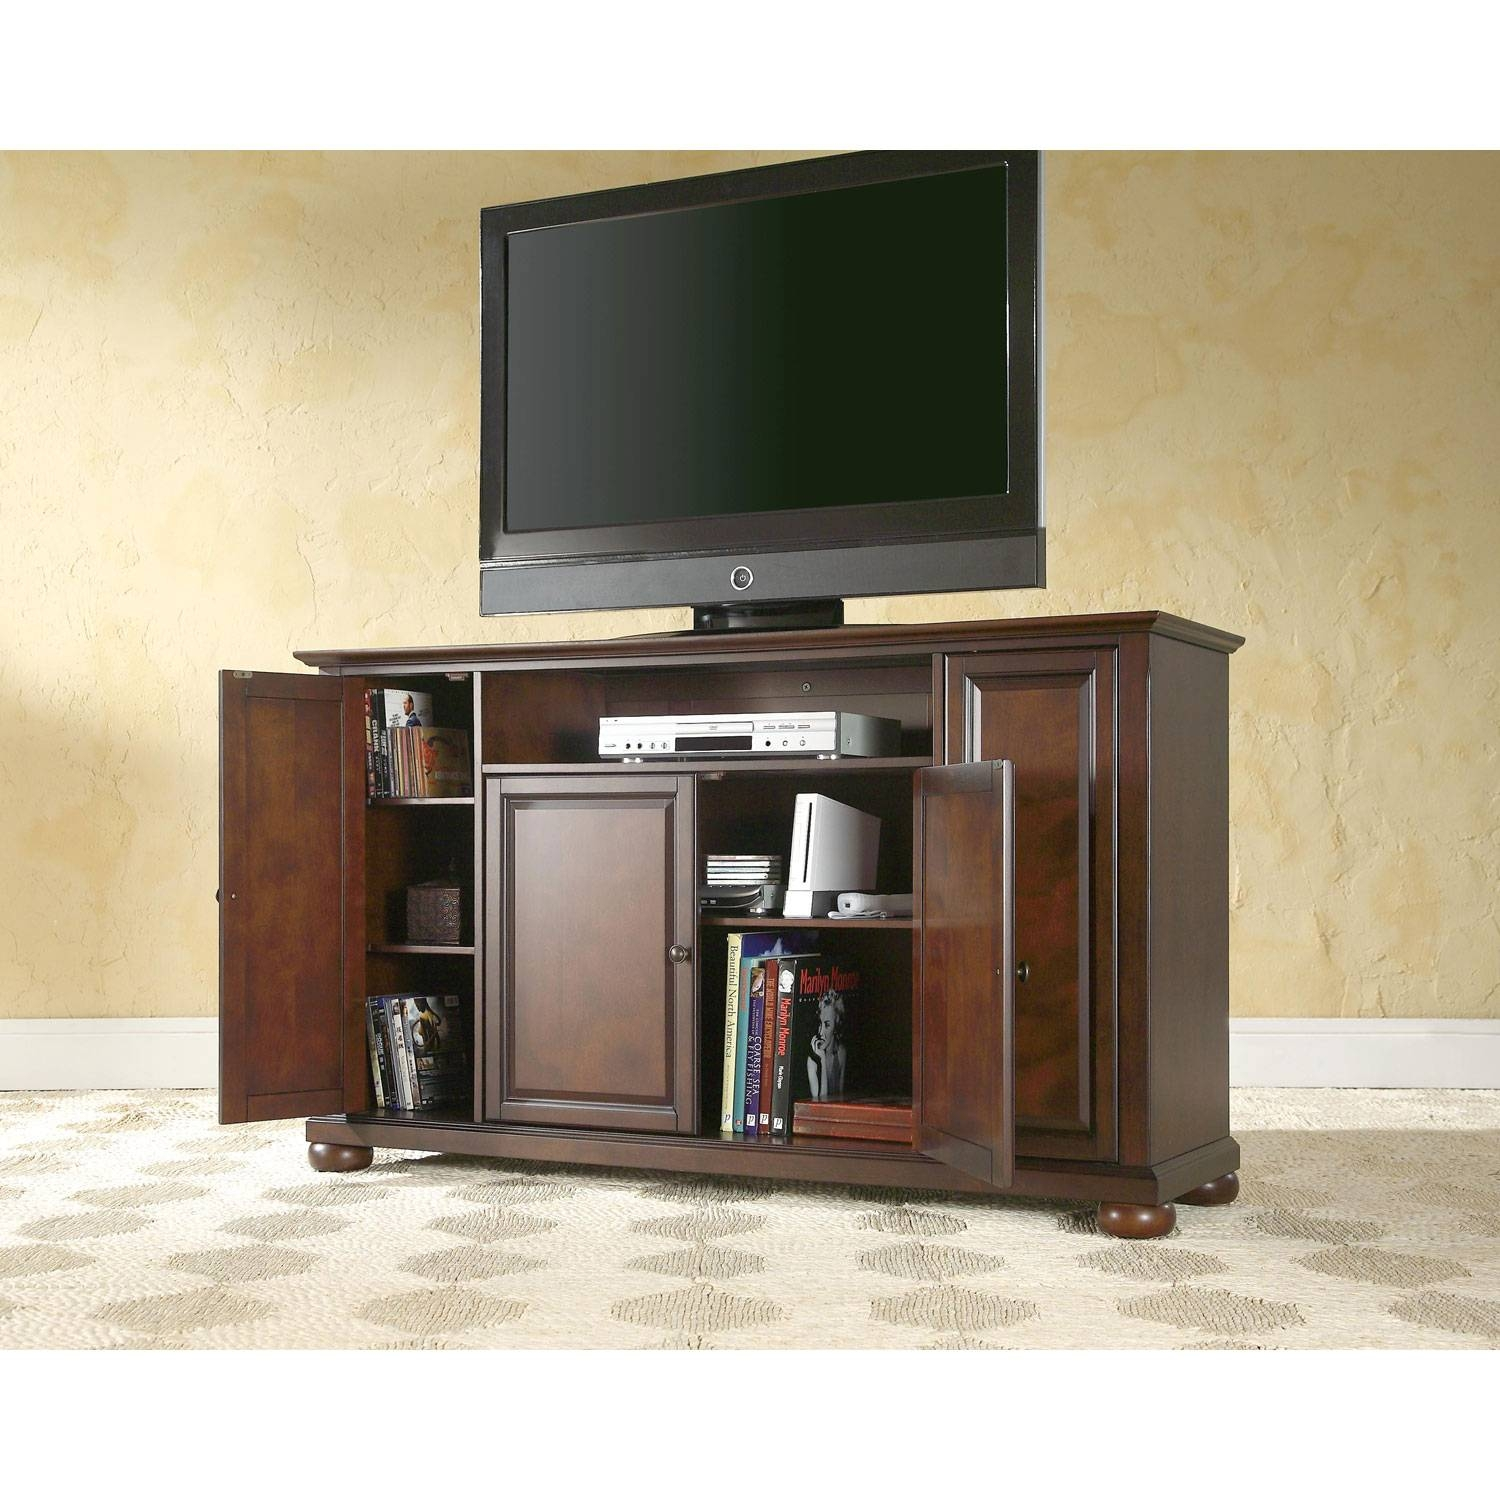 Alexandria 60 Inch Tv Stand In Vintage Mahogany Finish Crosley Regarding Corner 60 Inch Tv Stands (View 2 of 15)